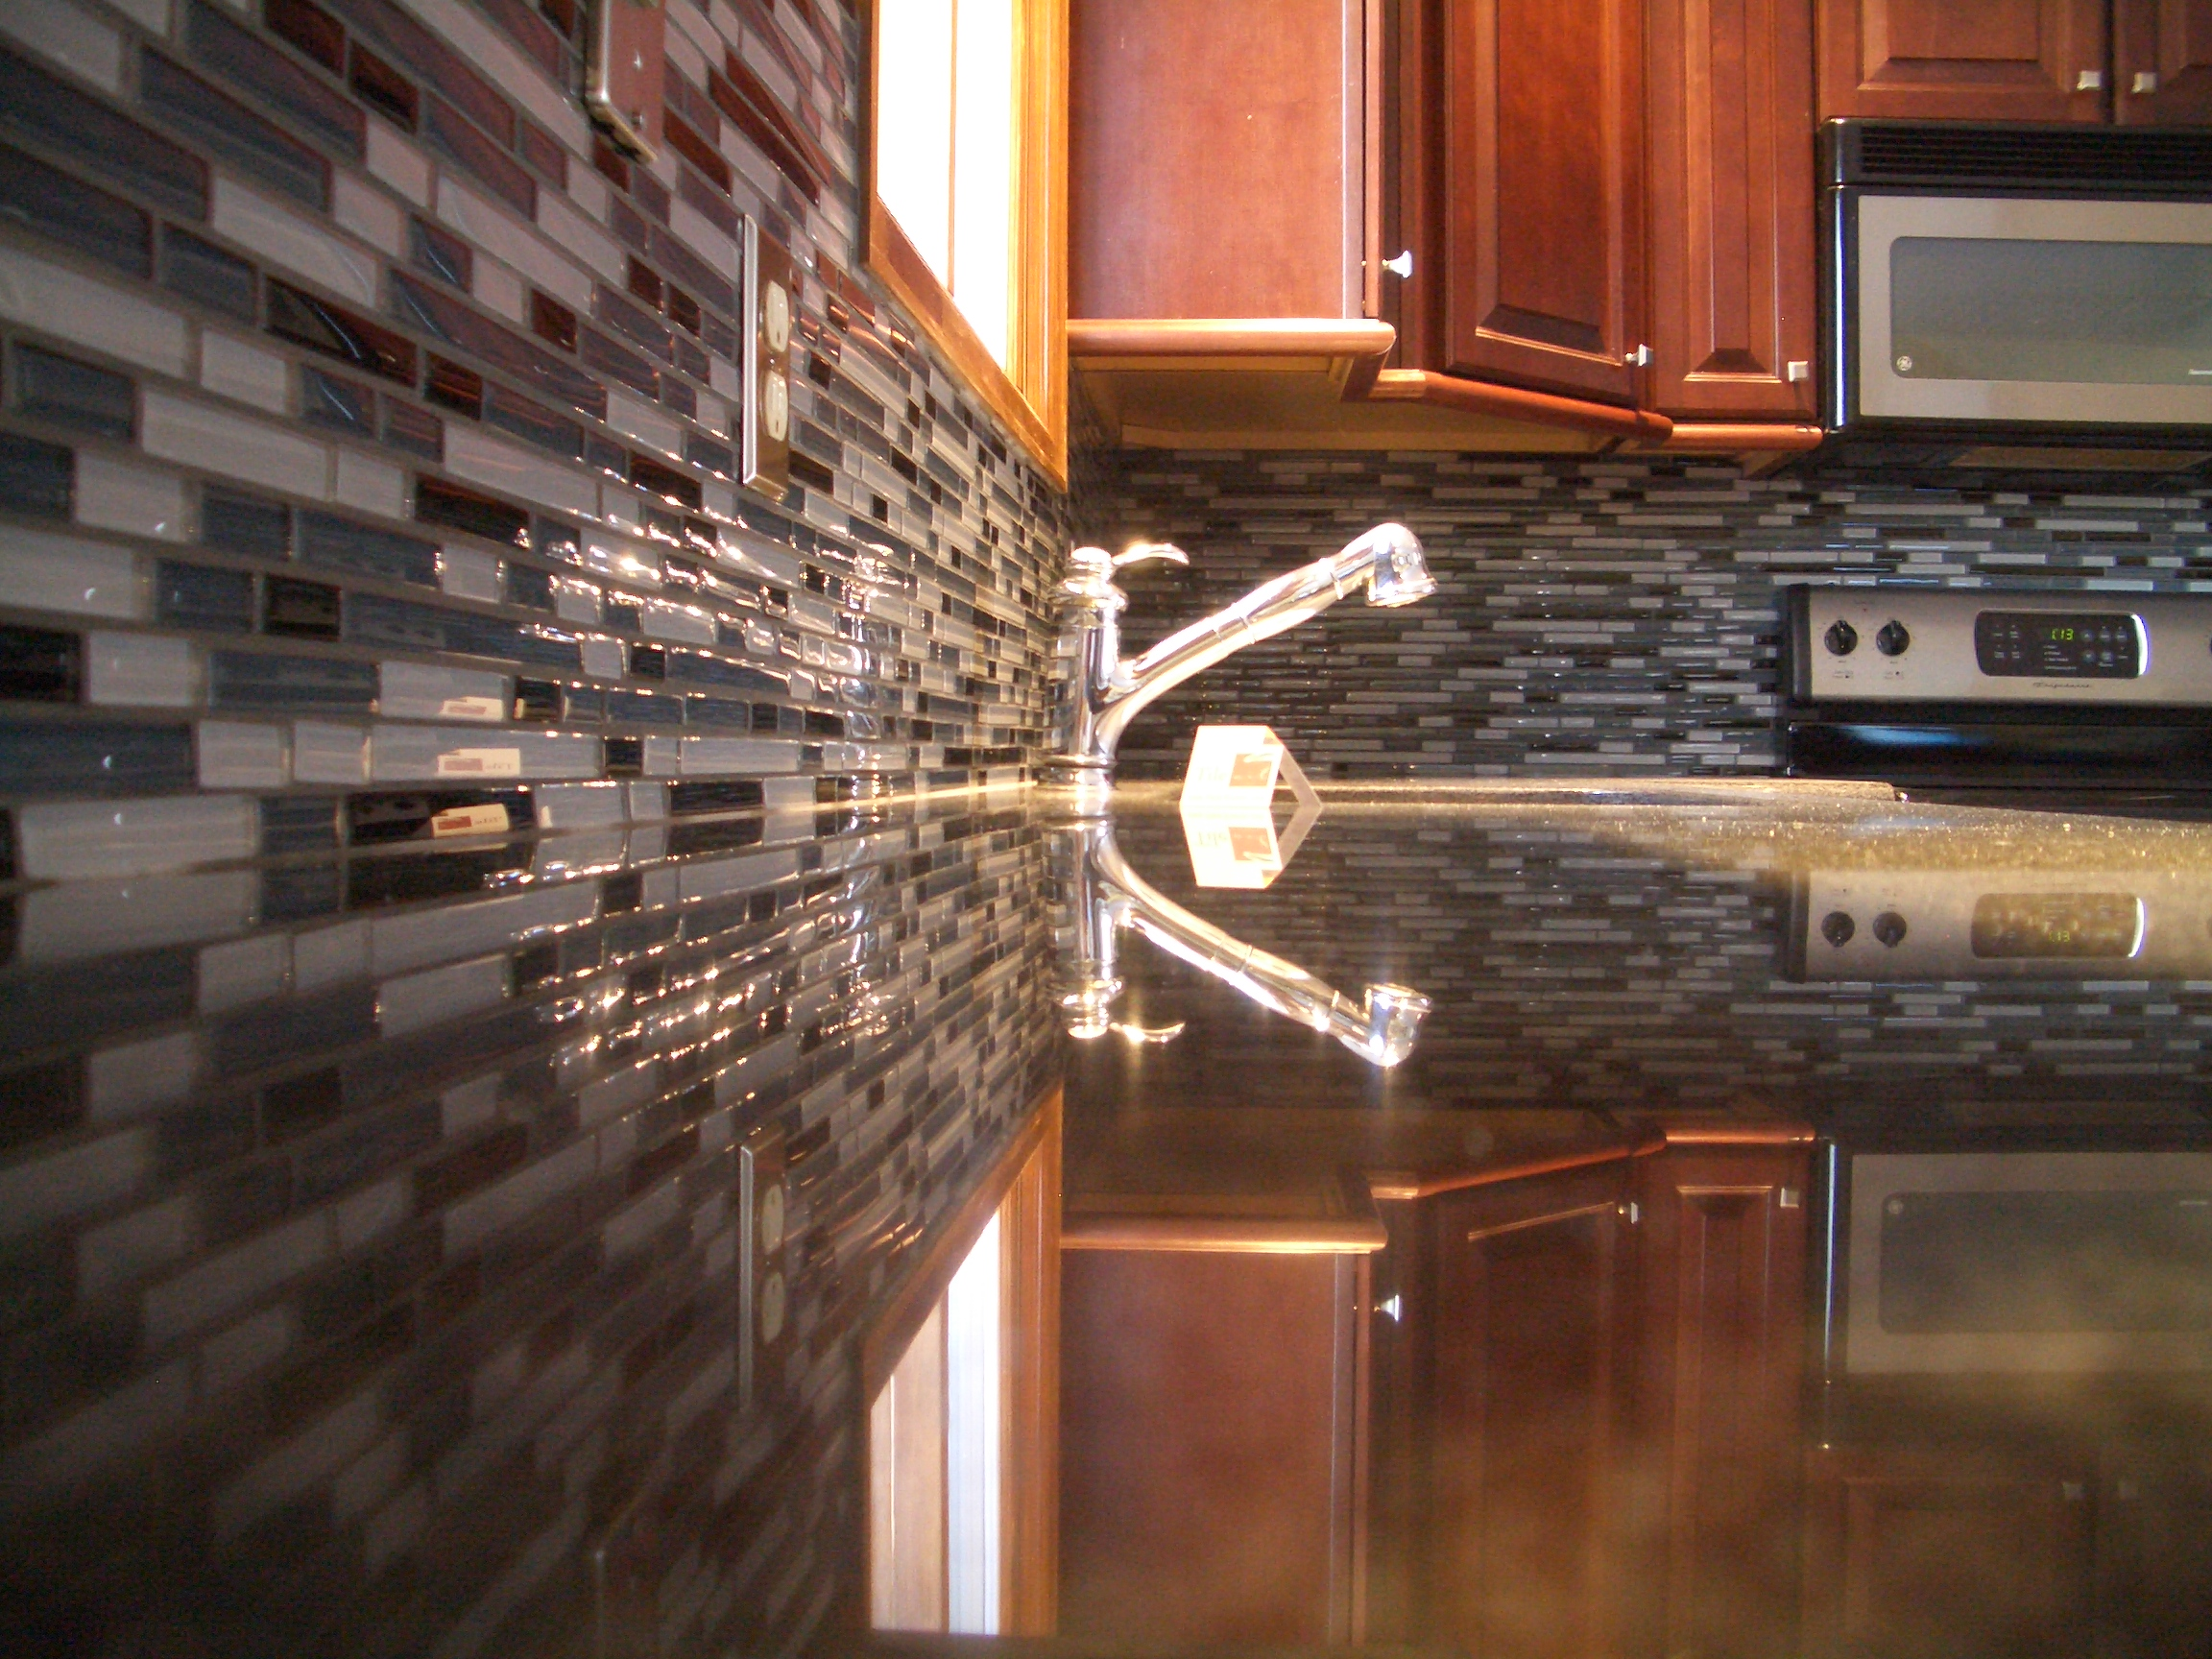 glass tile kitchen backsplash in fort collins backsplash tiles for kitchen Glass tile kitchen backsplash in Fort Collins